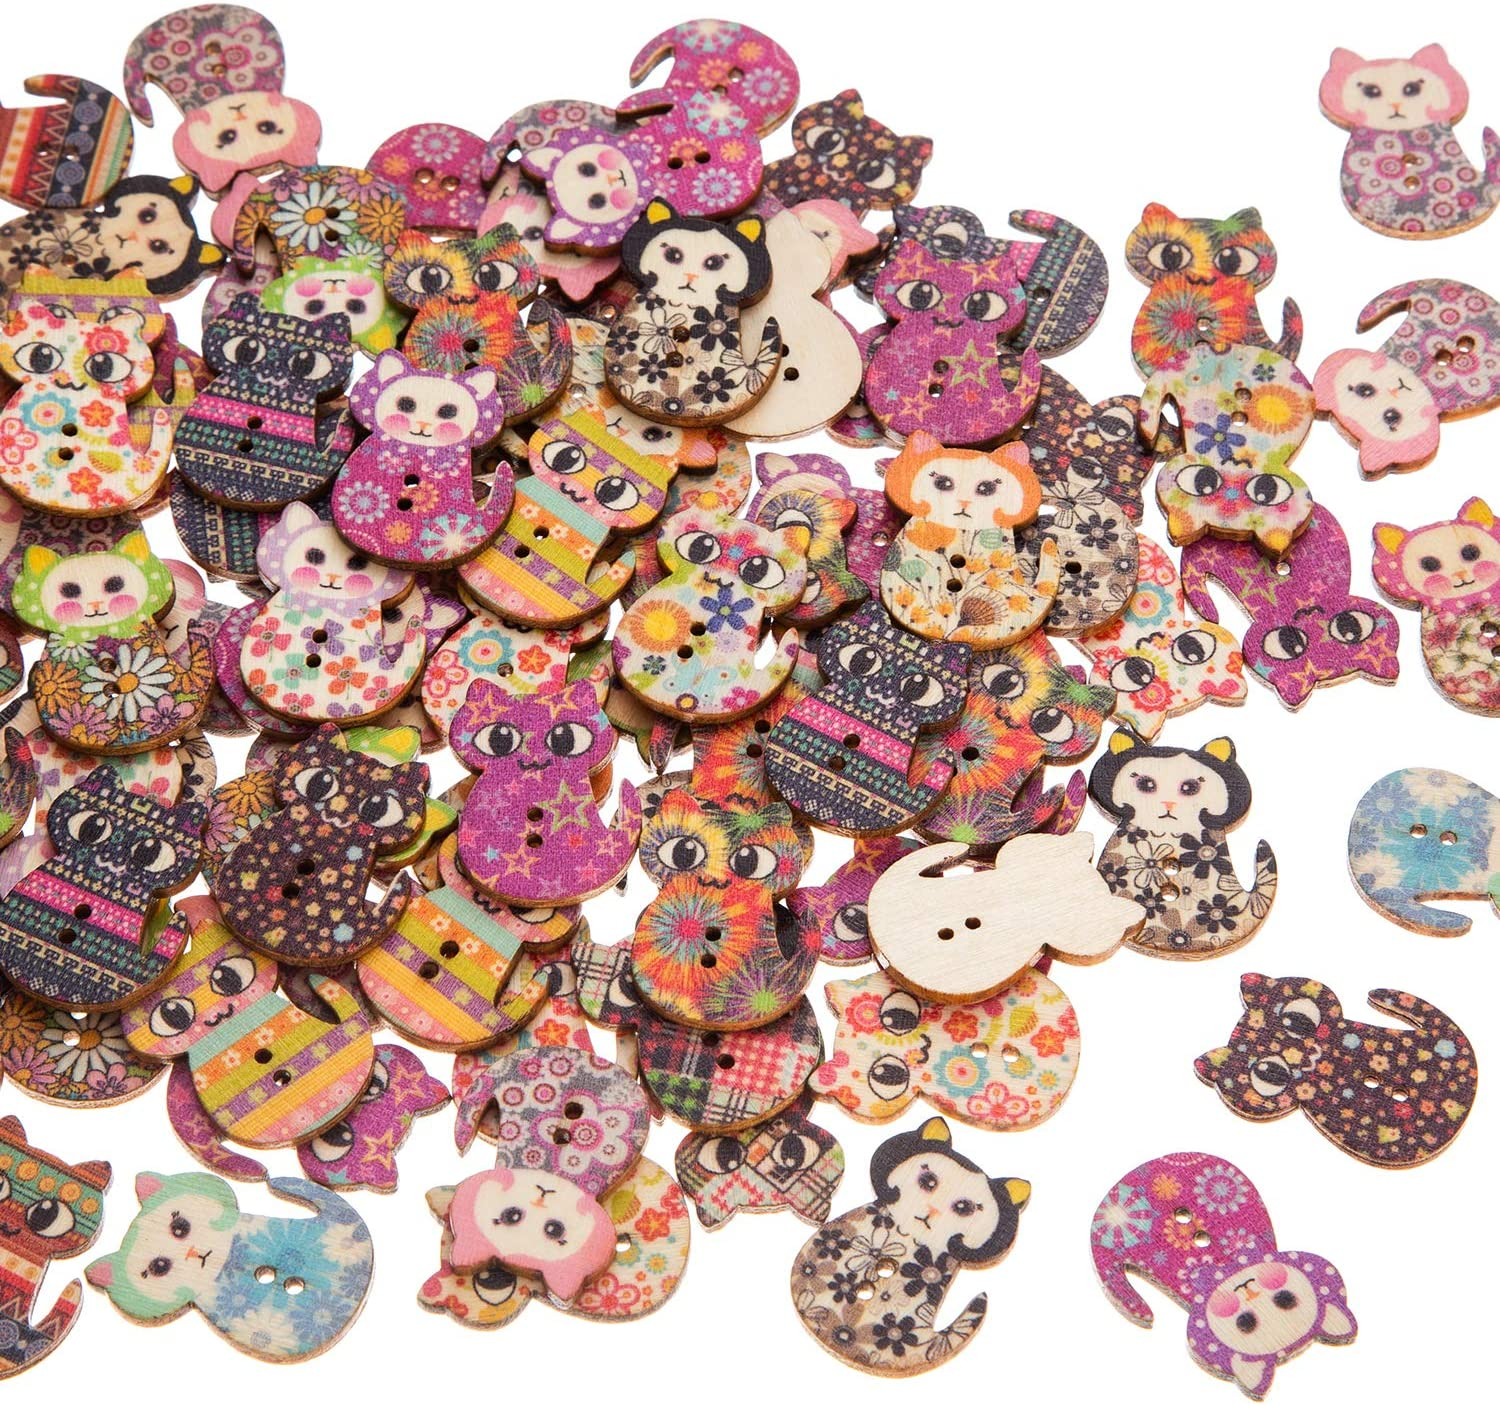 Vintage Buttons Mixed Lot 100 Pcs//lot Mixed Pattern Vintage Wood Buttons For DIY